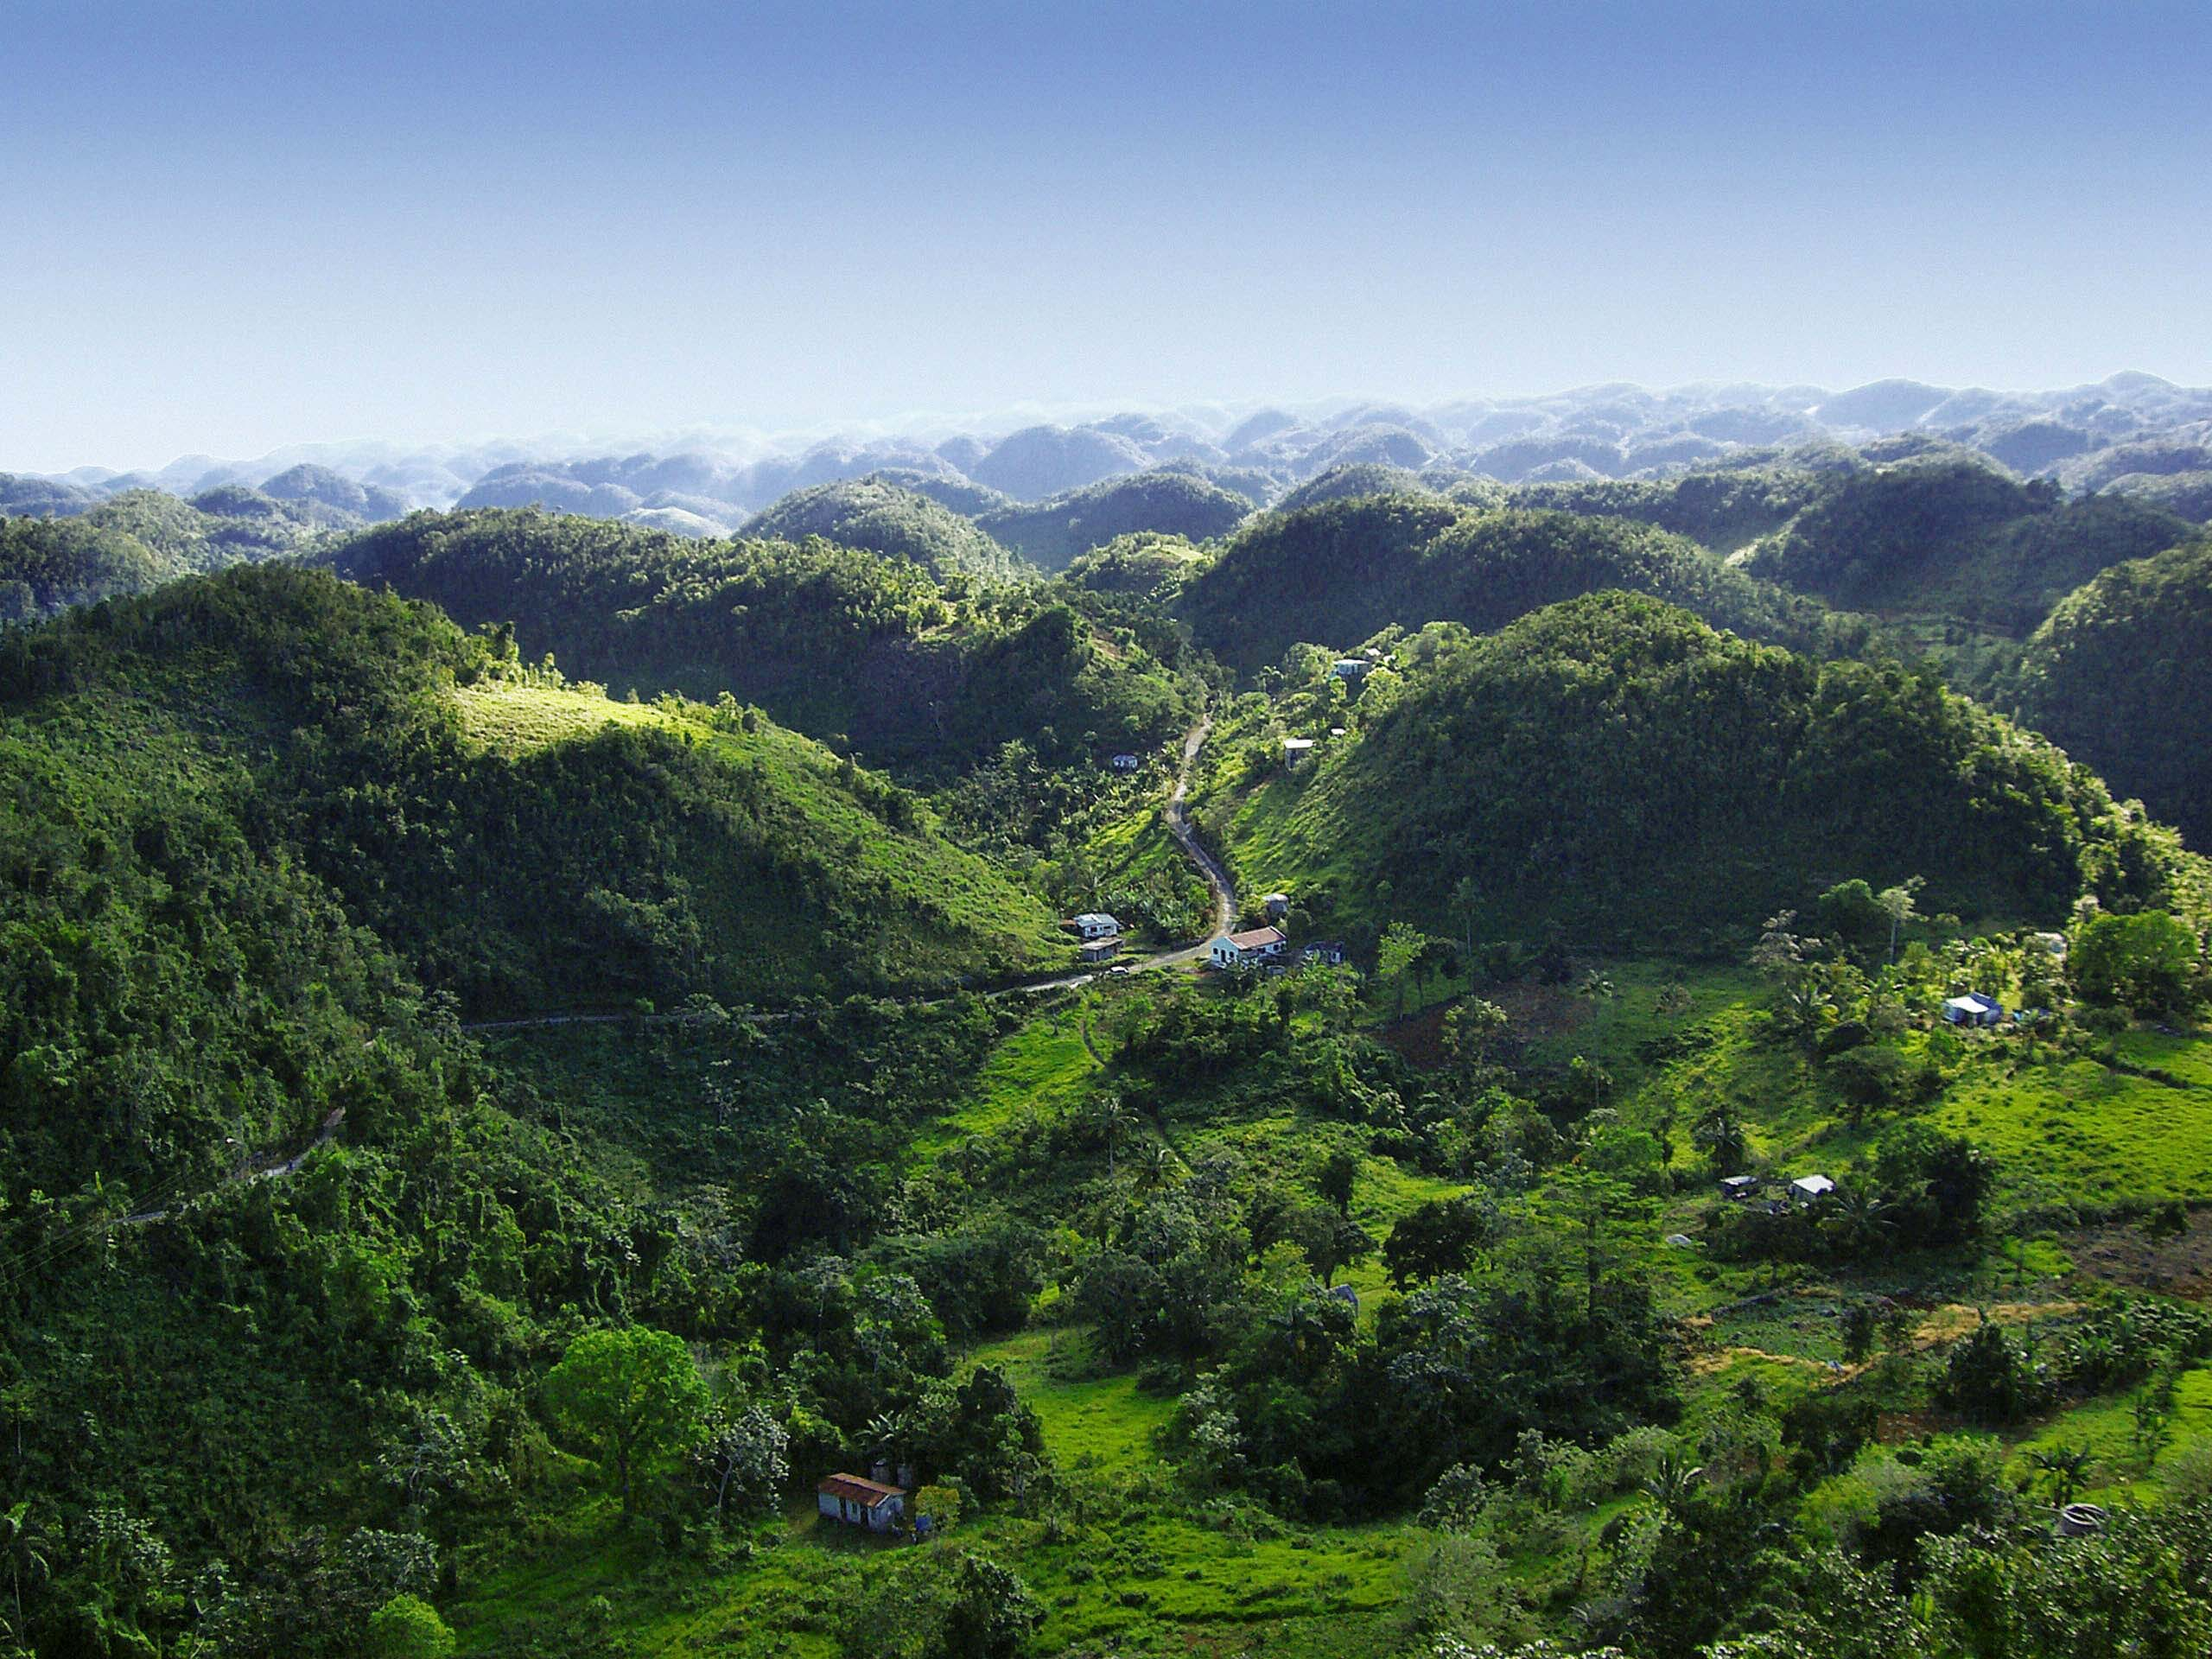 Great Wallpaper Mountain Green - jamaica-blue-mountains-wallpaper-images-picture-download  You Should Have_918485.jpg